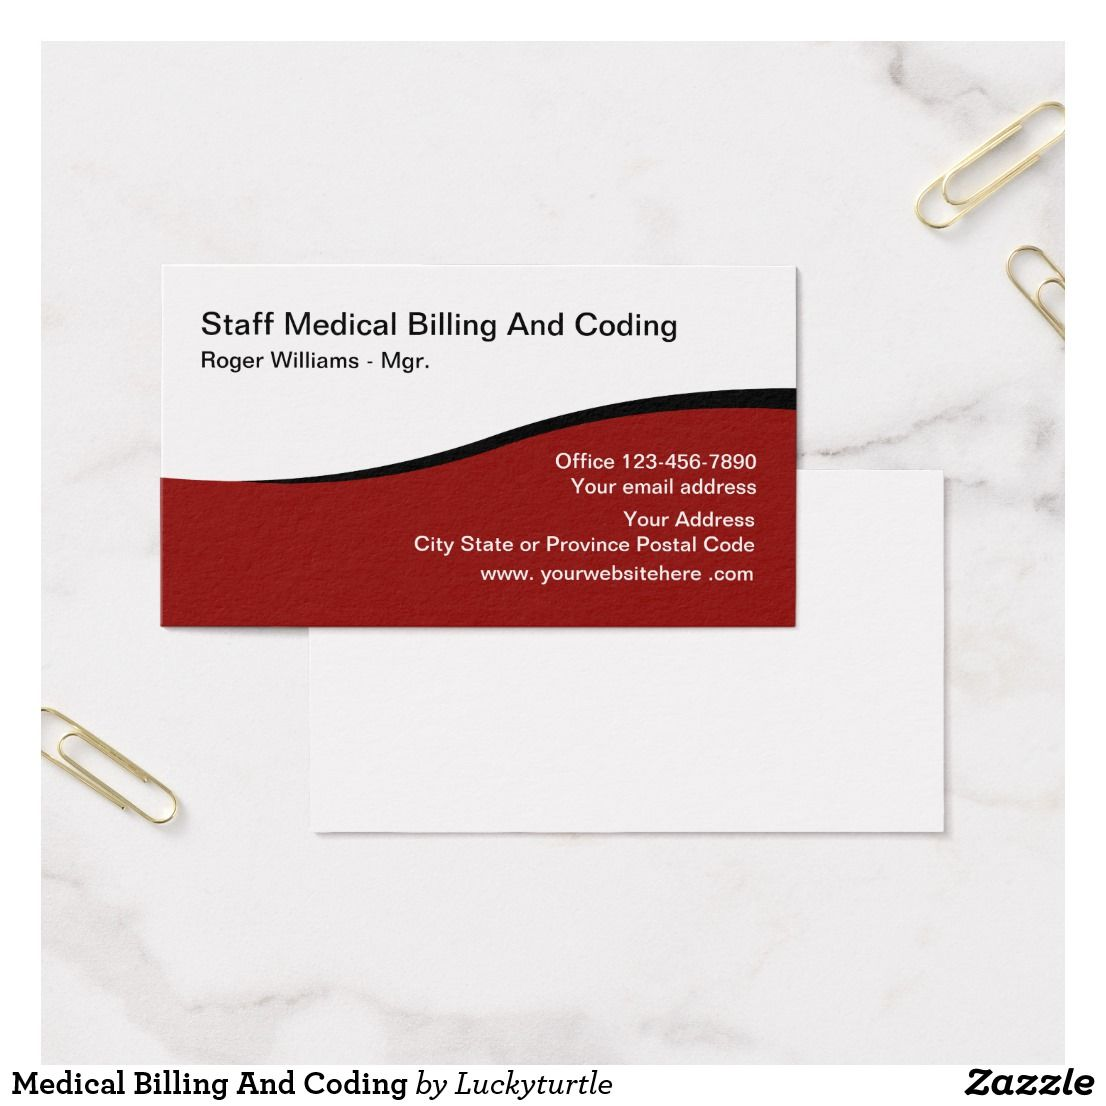 Medical Billing And Coding Business Card   Business cards